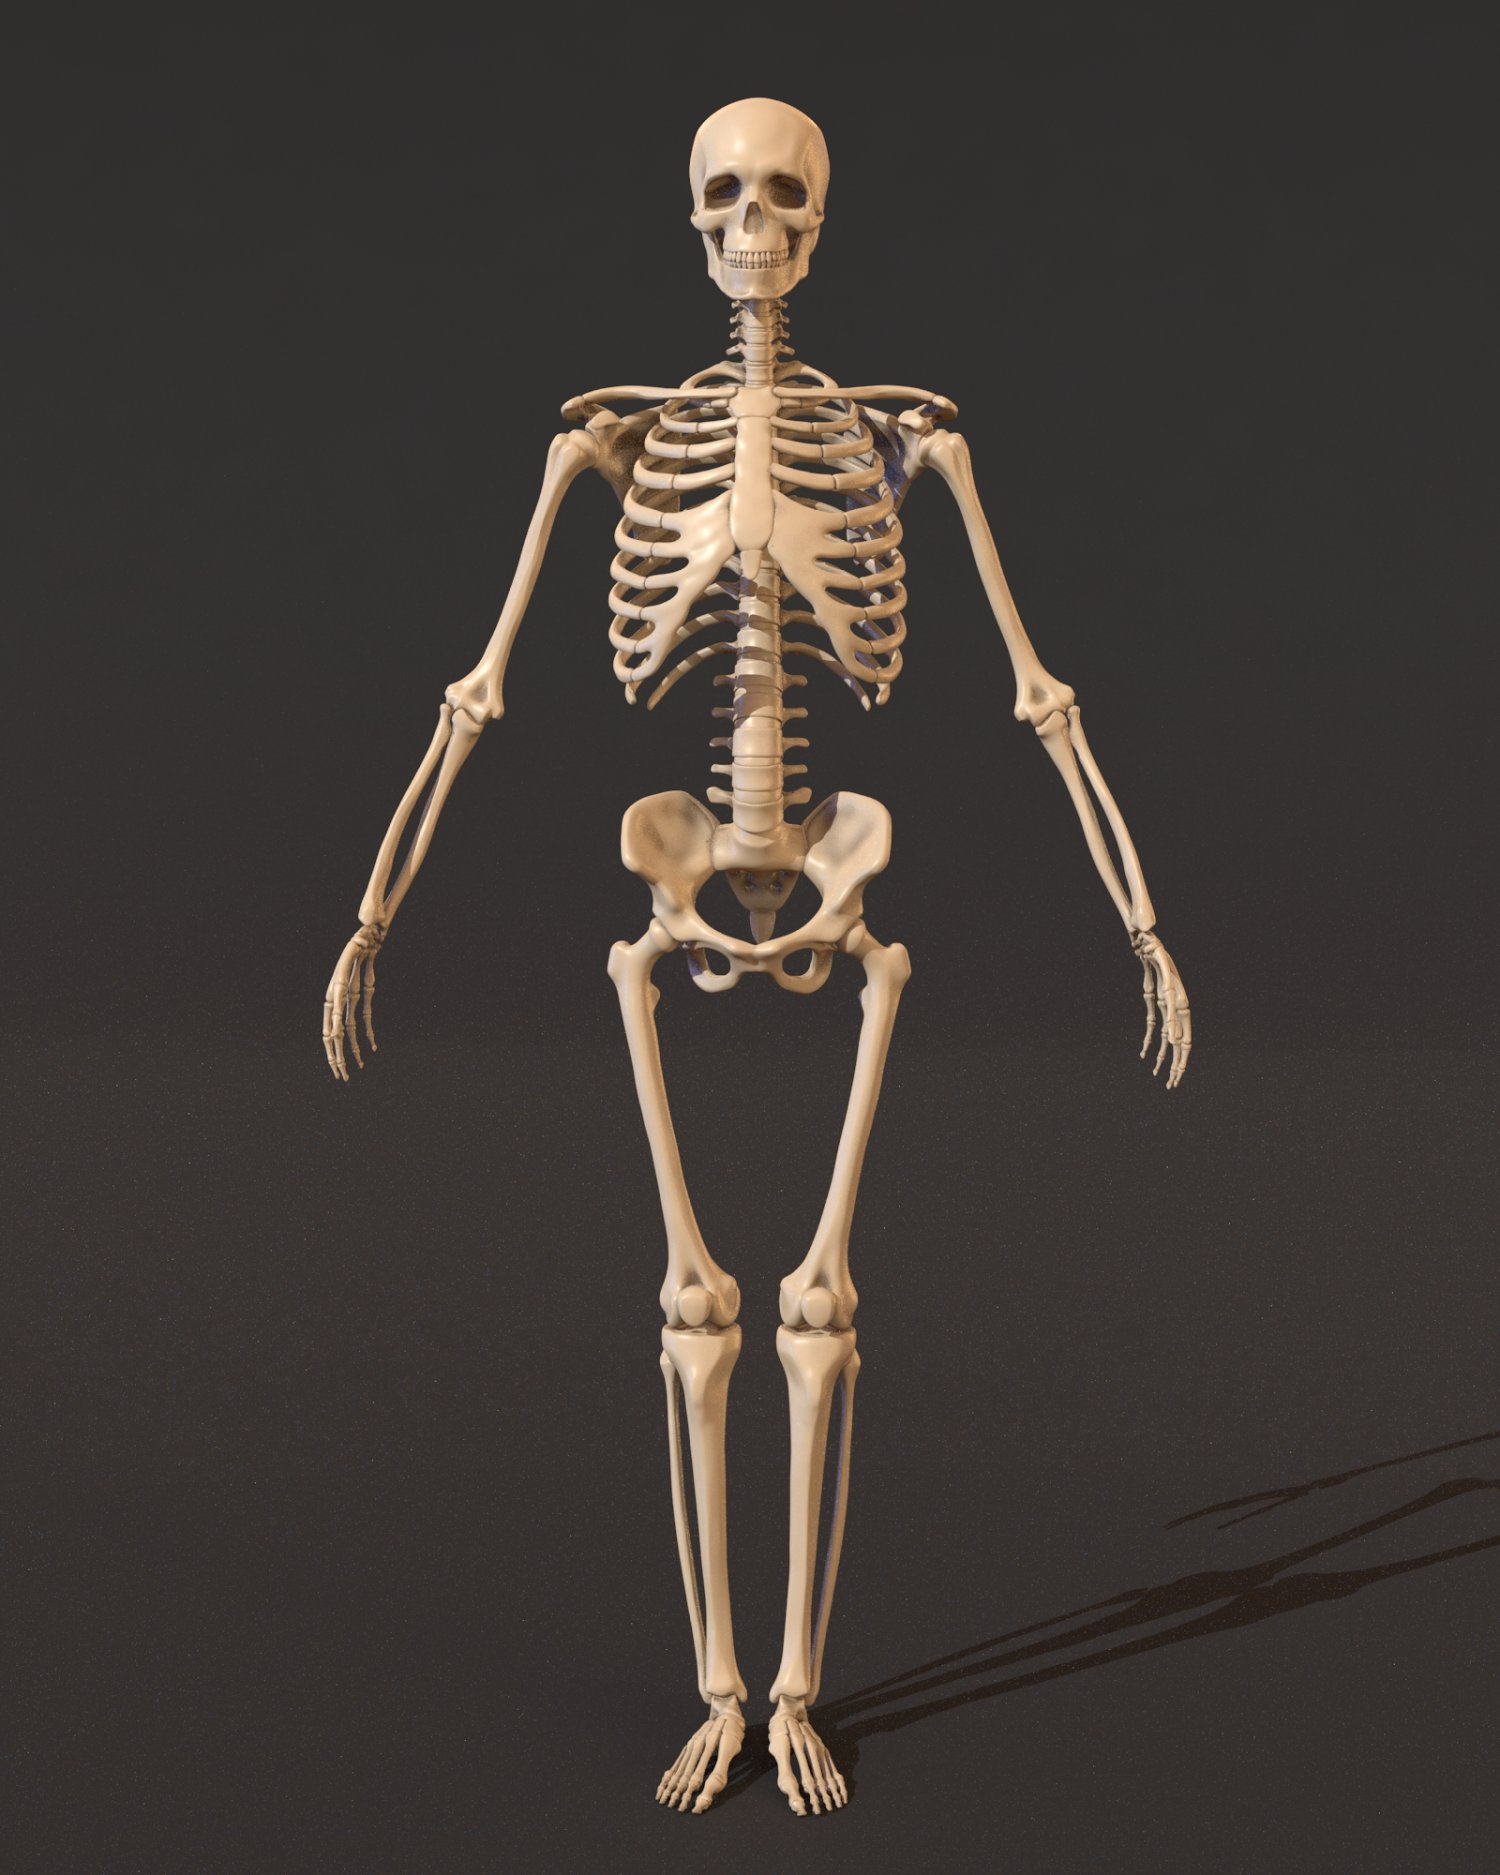 Human Skeleton 3d Model In Anatomy 3dexport